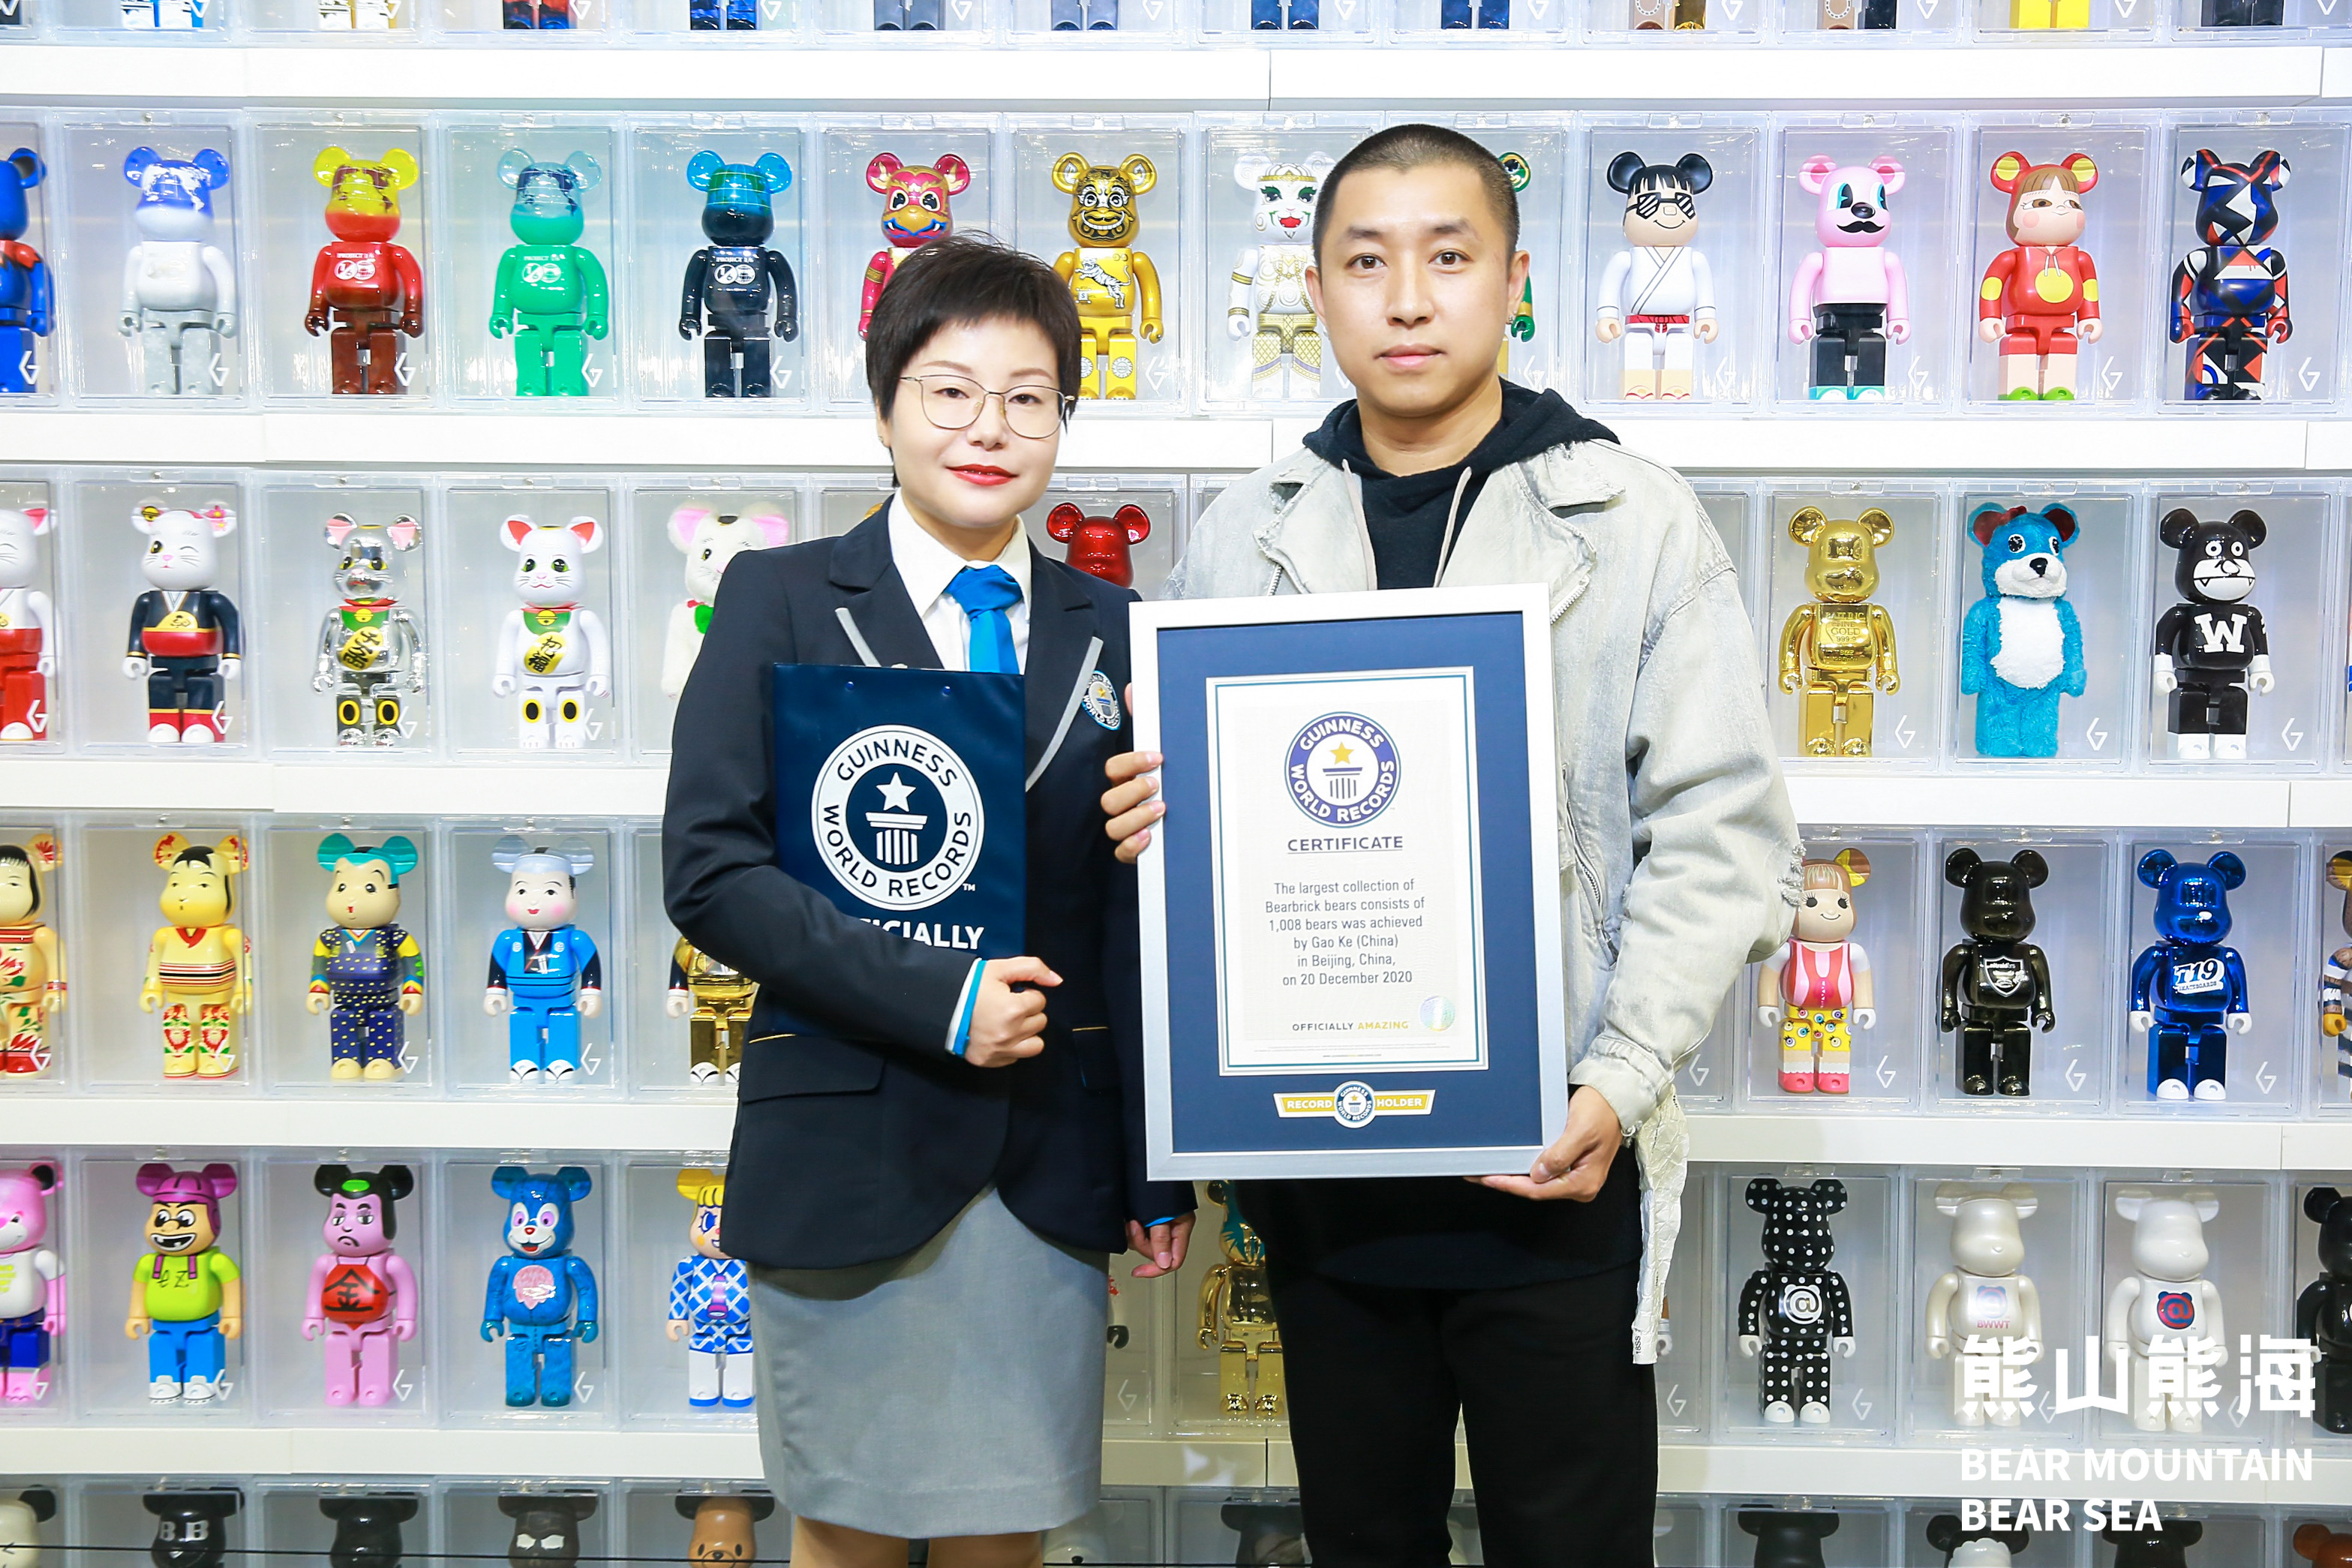 Largest collection of Bearbrick bears